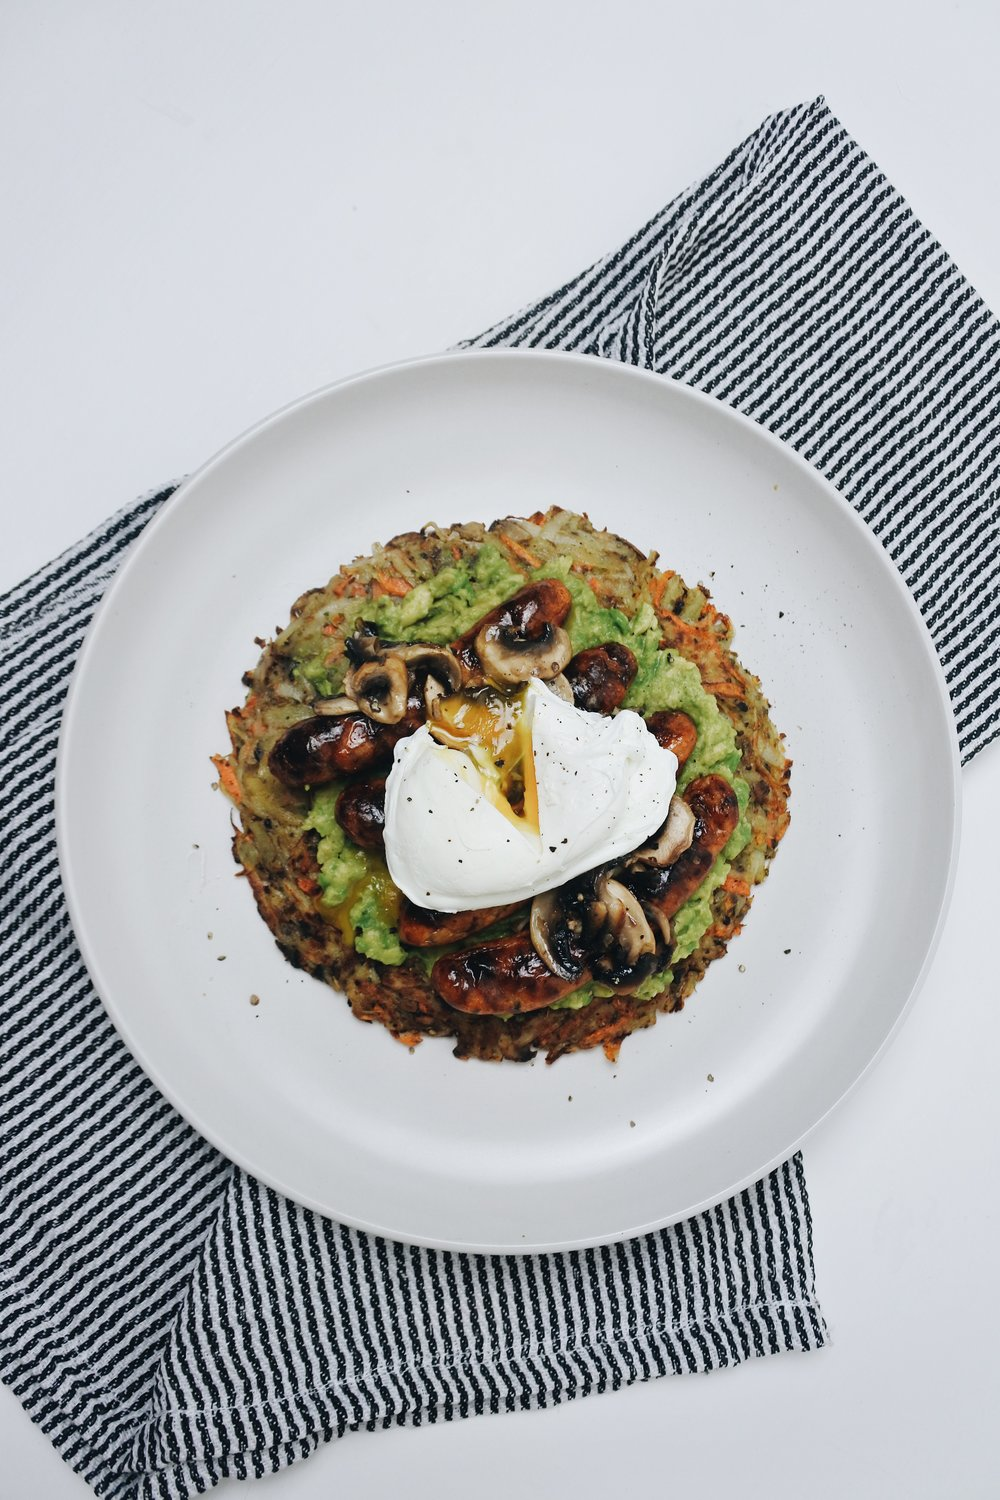 LOADED SWEET POTATO ROSTI